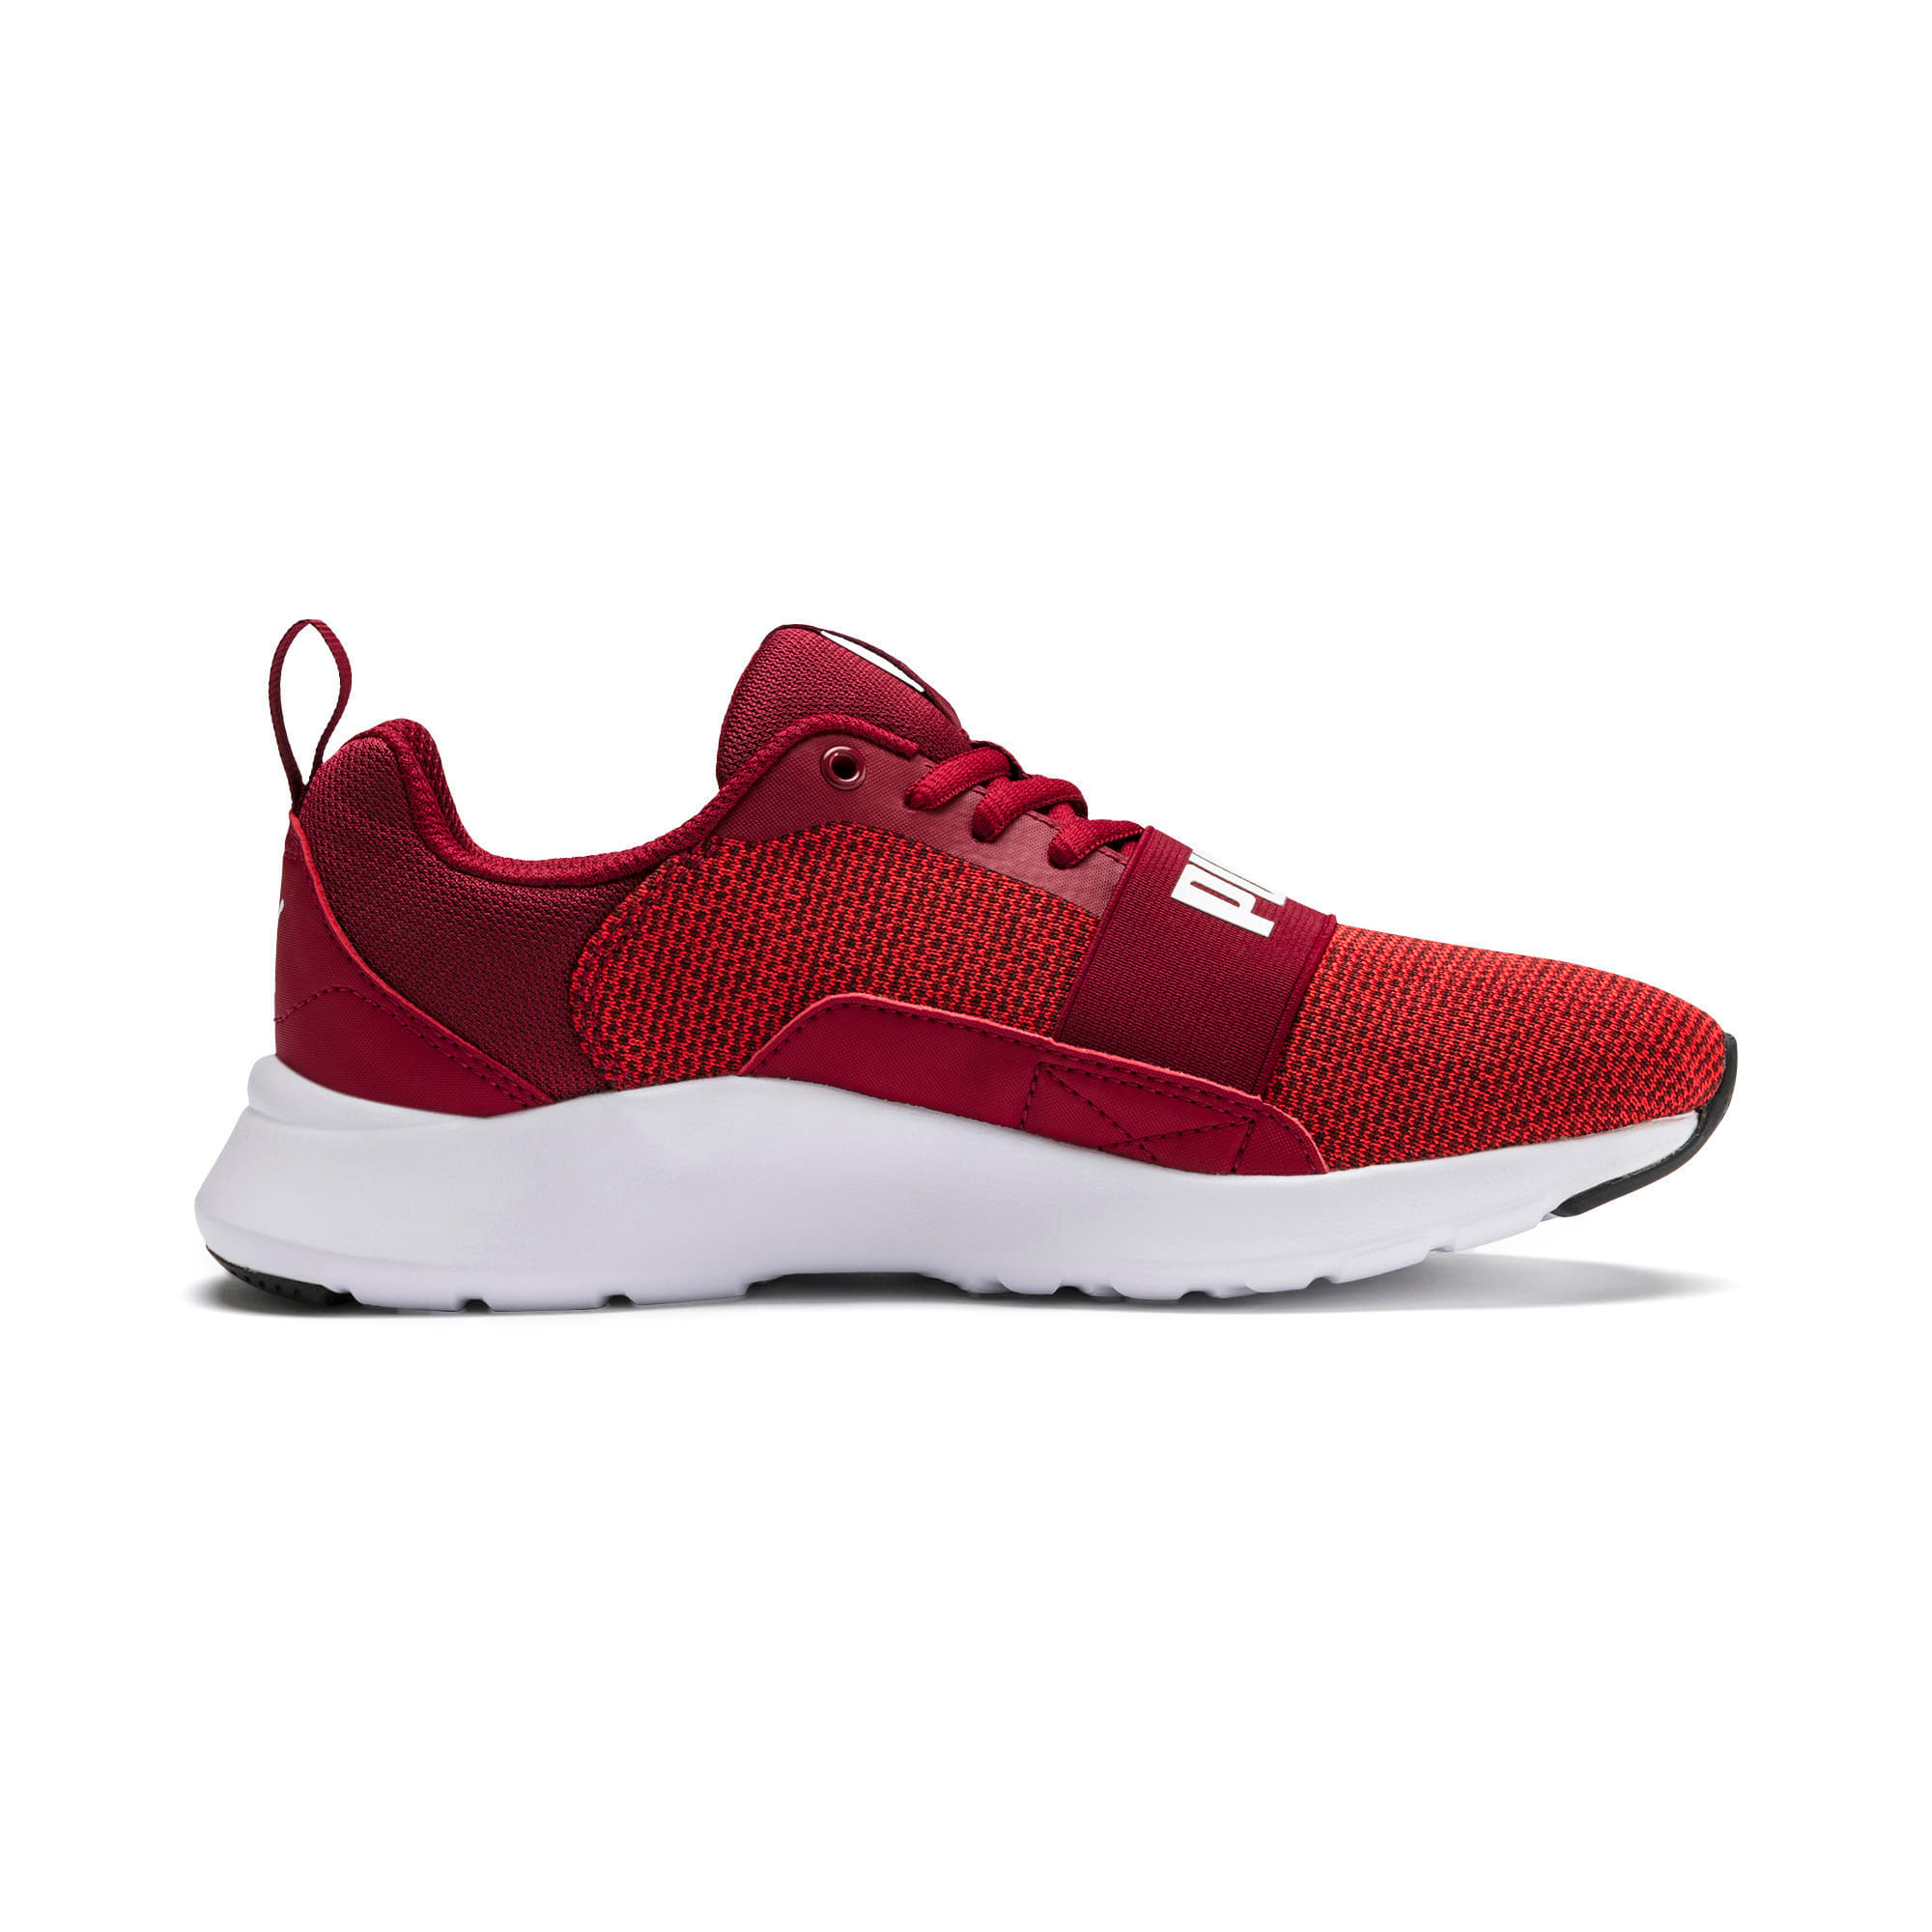 Thumbnail 3 of Wired Knit Youth Trainers, Rhubarb-Puma White, medium-IND